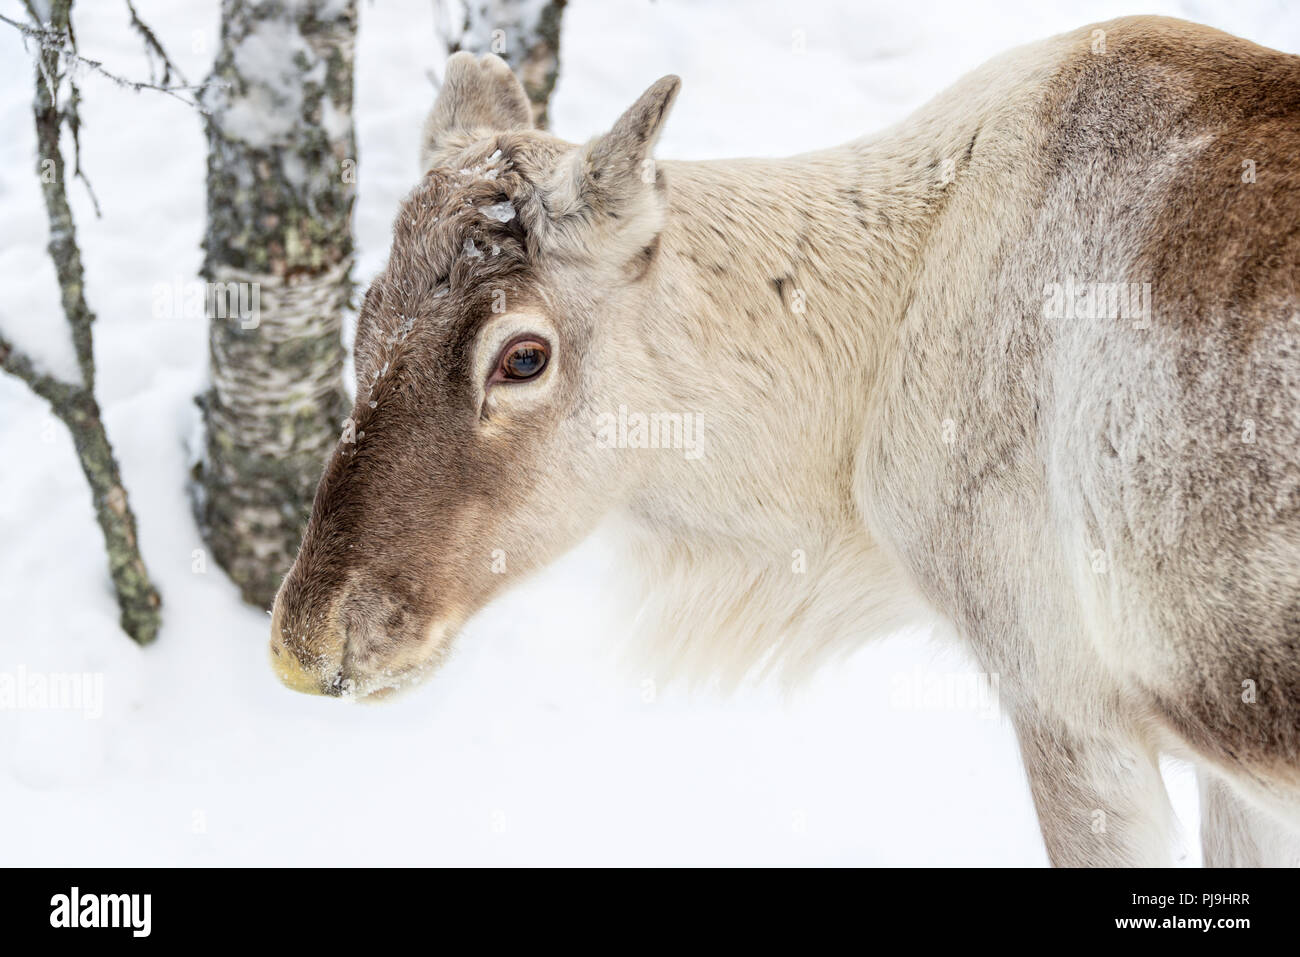 Young reindeer in the forest in winter, Lapland, Finland - Stock Image